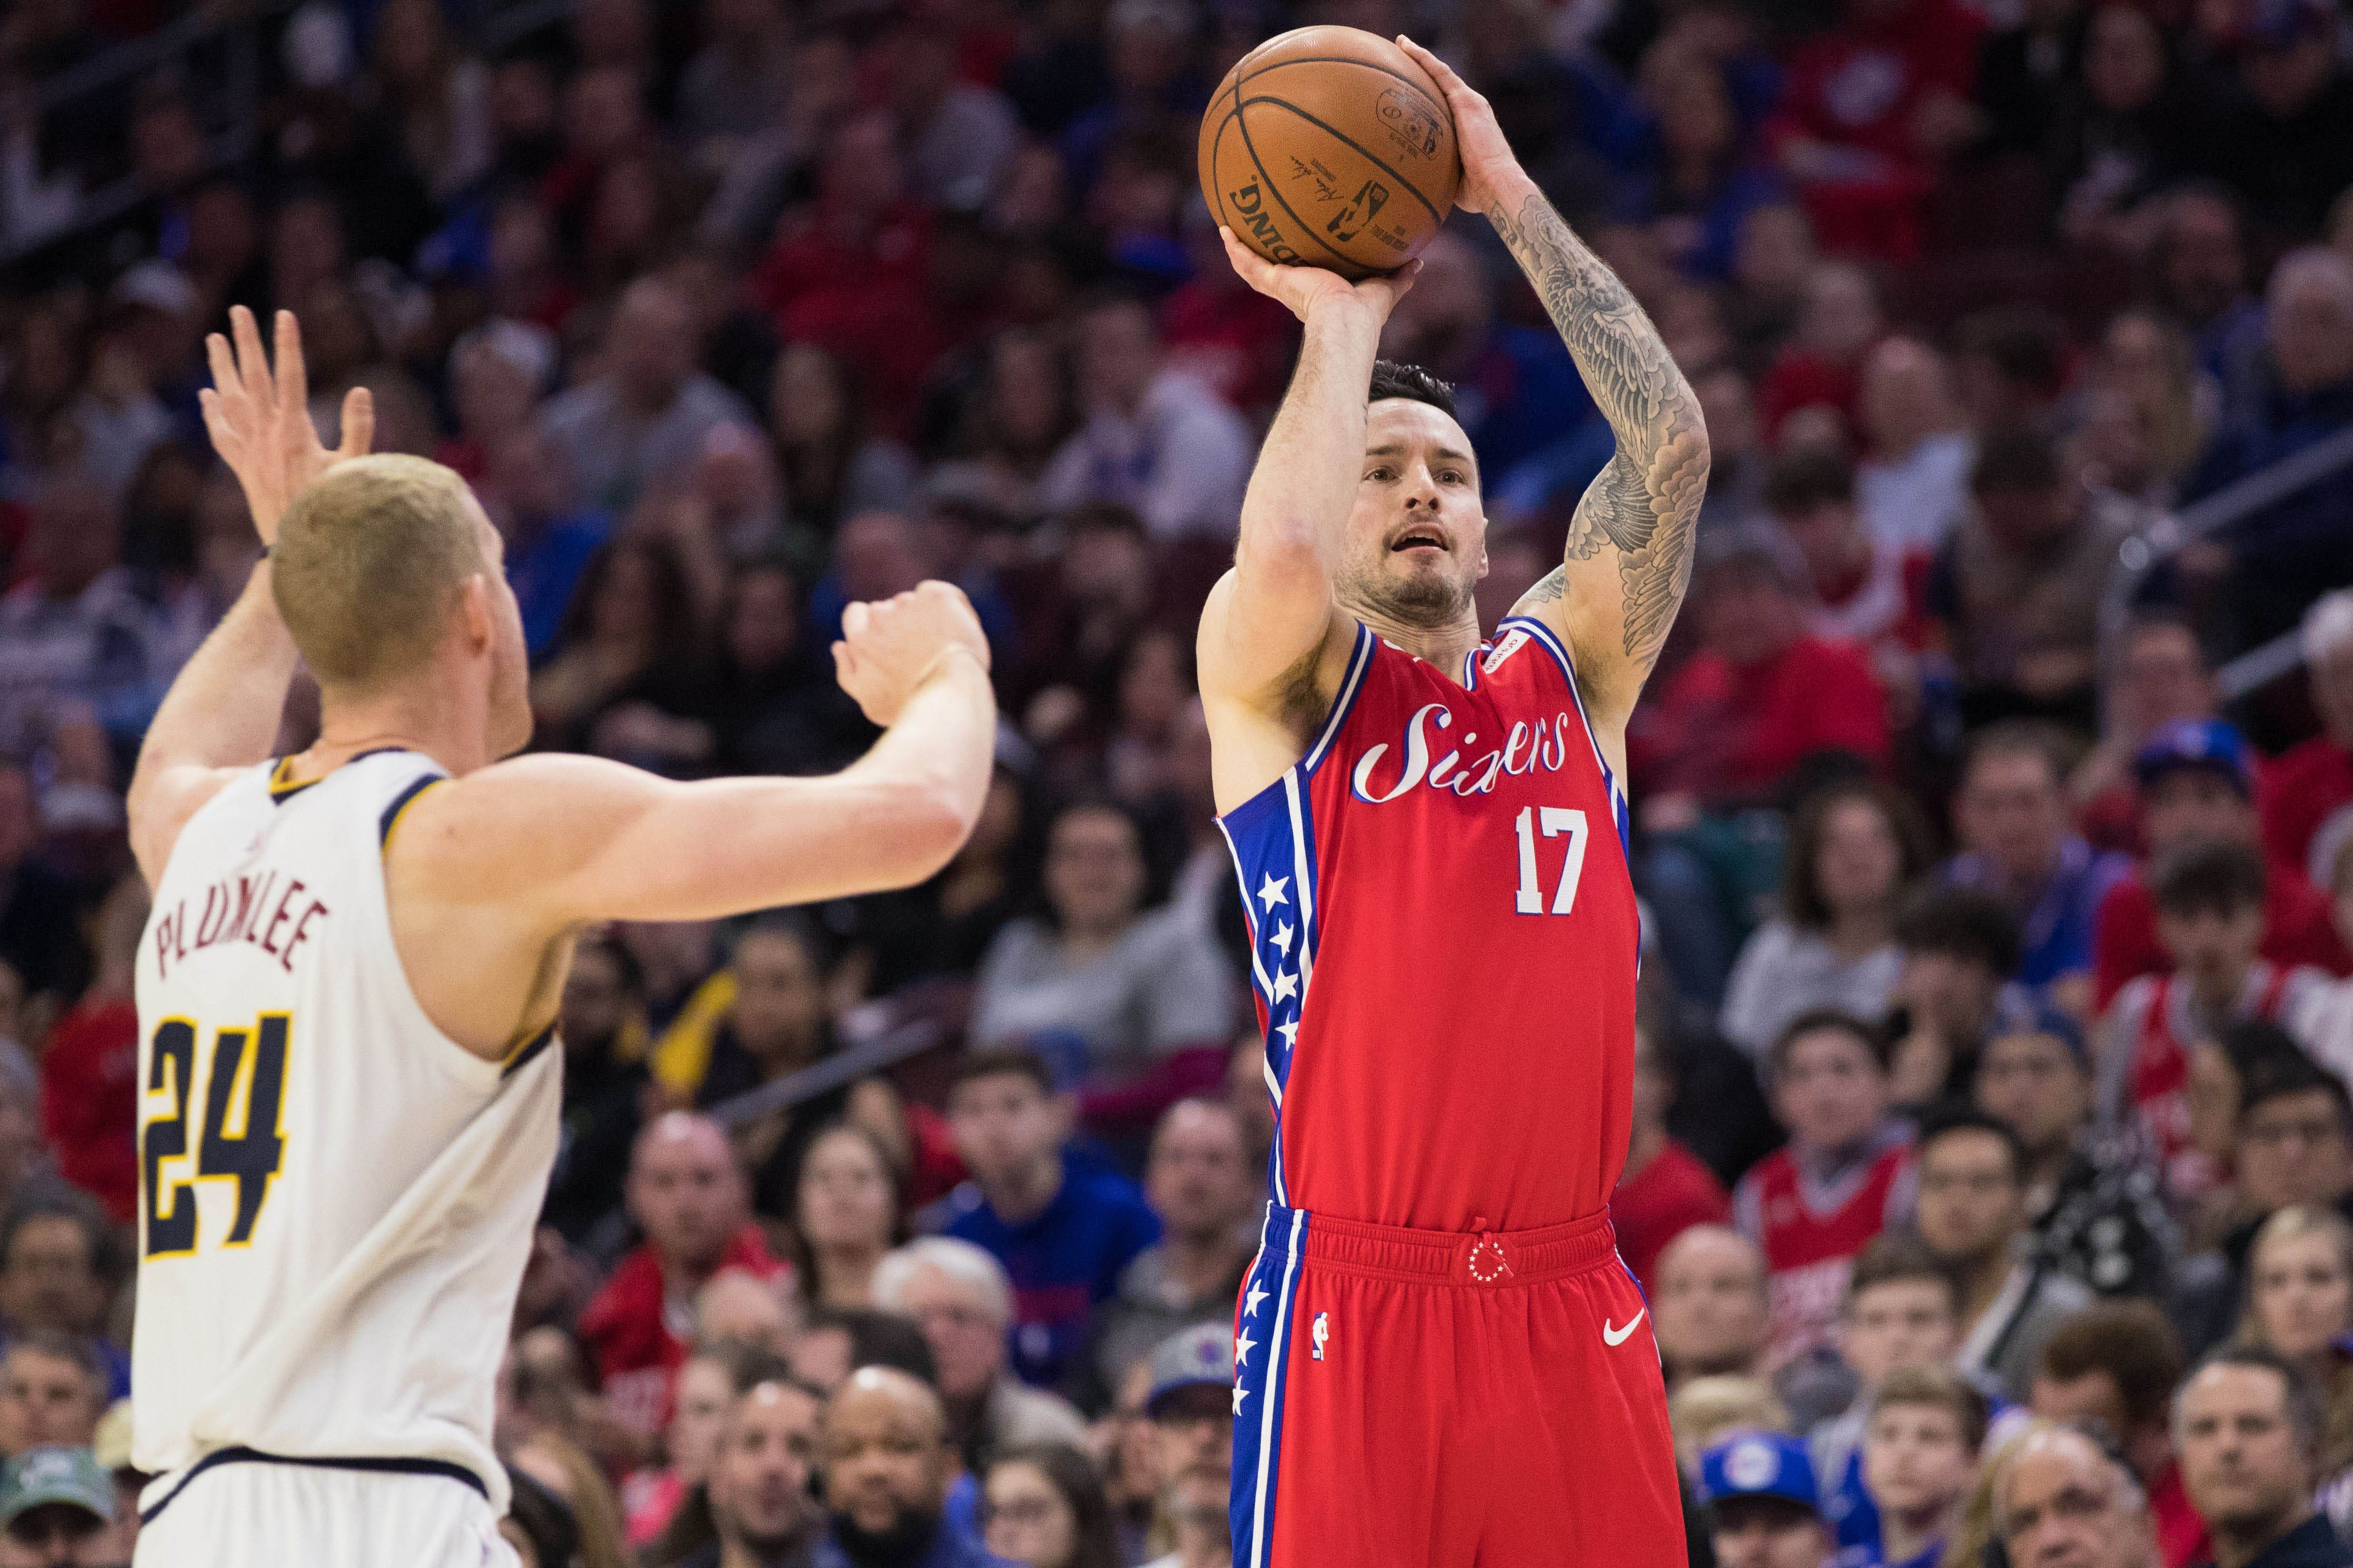 JJ Redick calls it a career:  Last 30 years of basketball have been beyond my wildest dreams